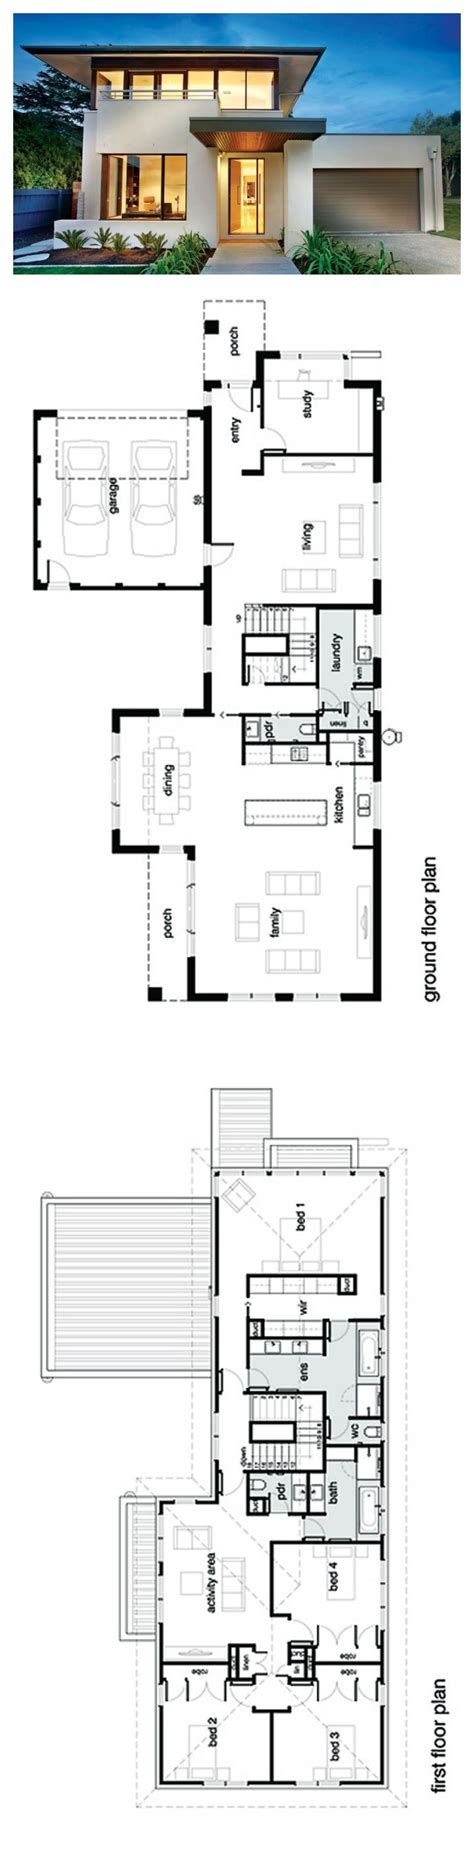 modern houses floor plans best 25 modern house plans ideas on pinterest